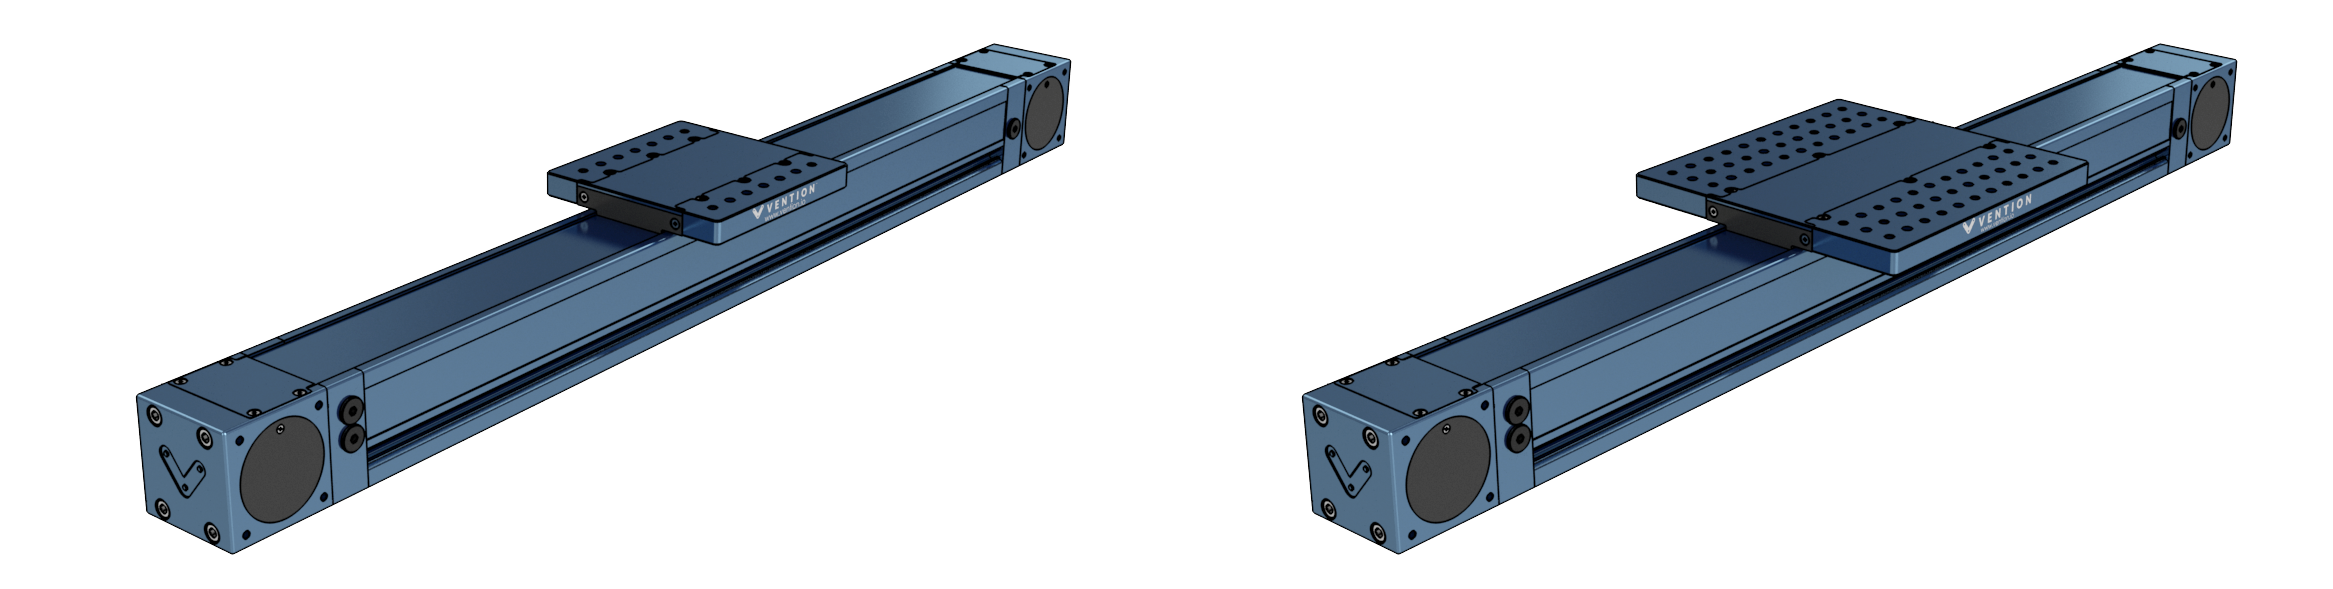 Figure 4: View of the Enclosed Timing Belt Actuator in its two configurations, standard duty, MO-LM-026-XXXX (left) and heavy duty, MO-LM-027-XXXX (right).